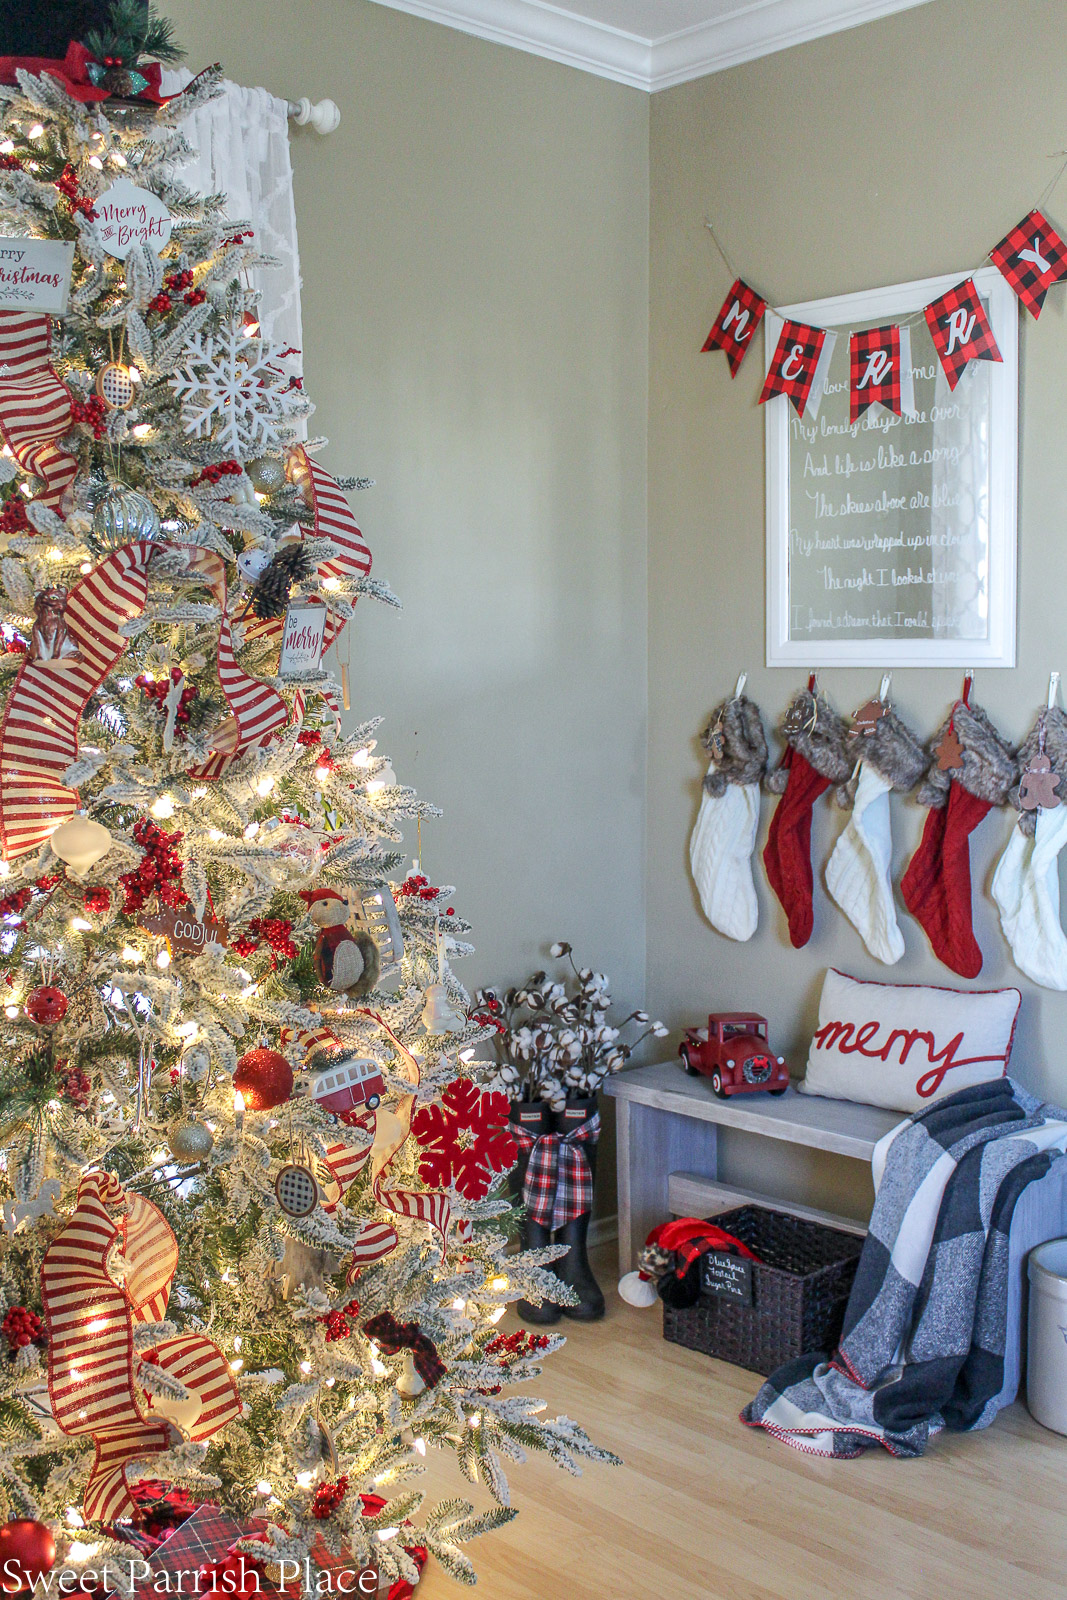 prairie house christmas tree with stockings in background